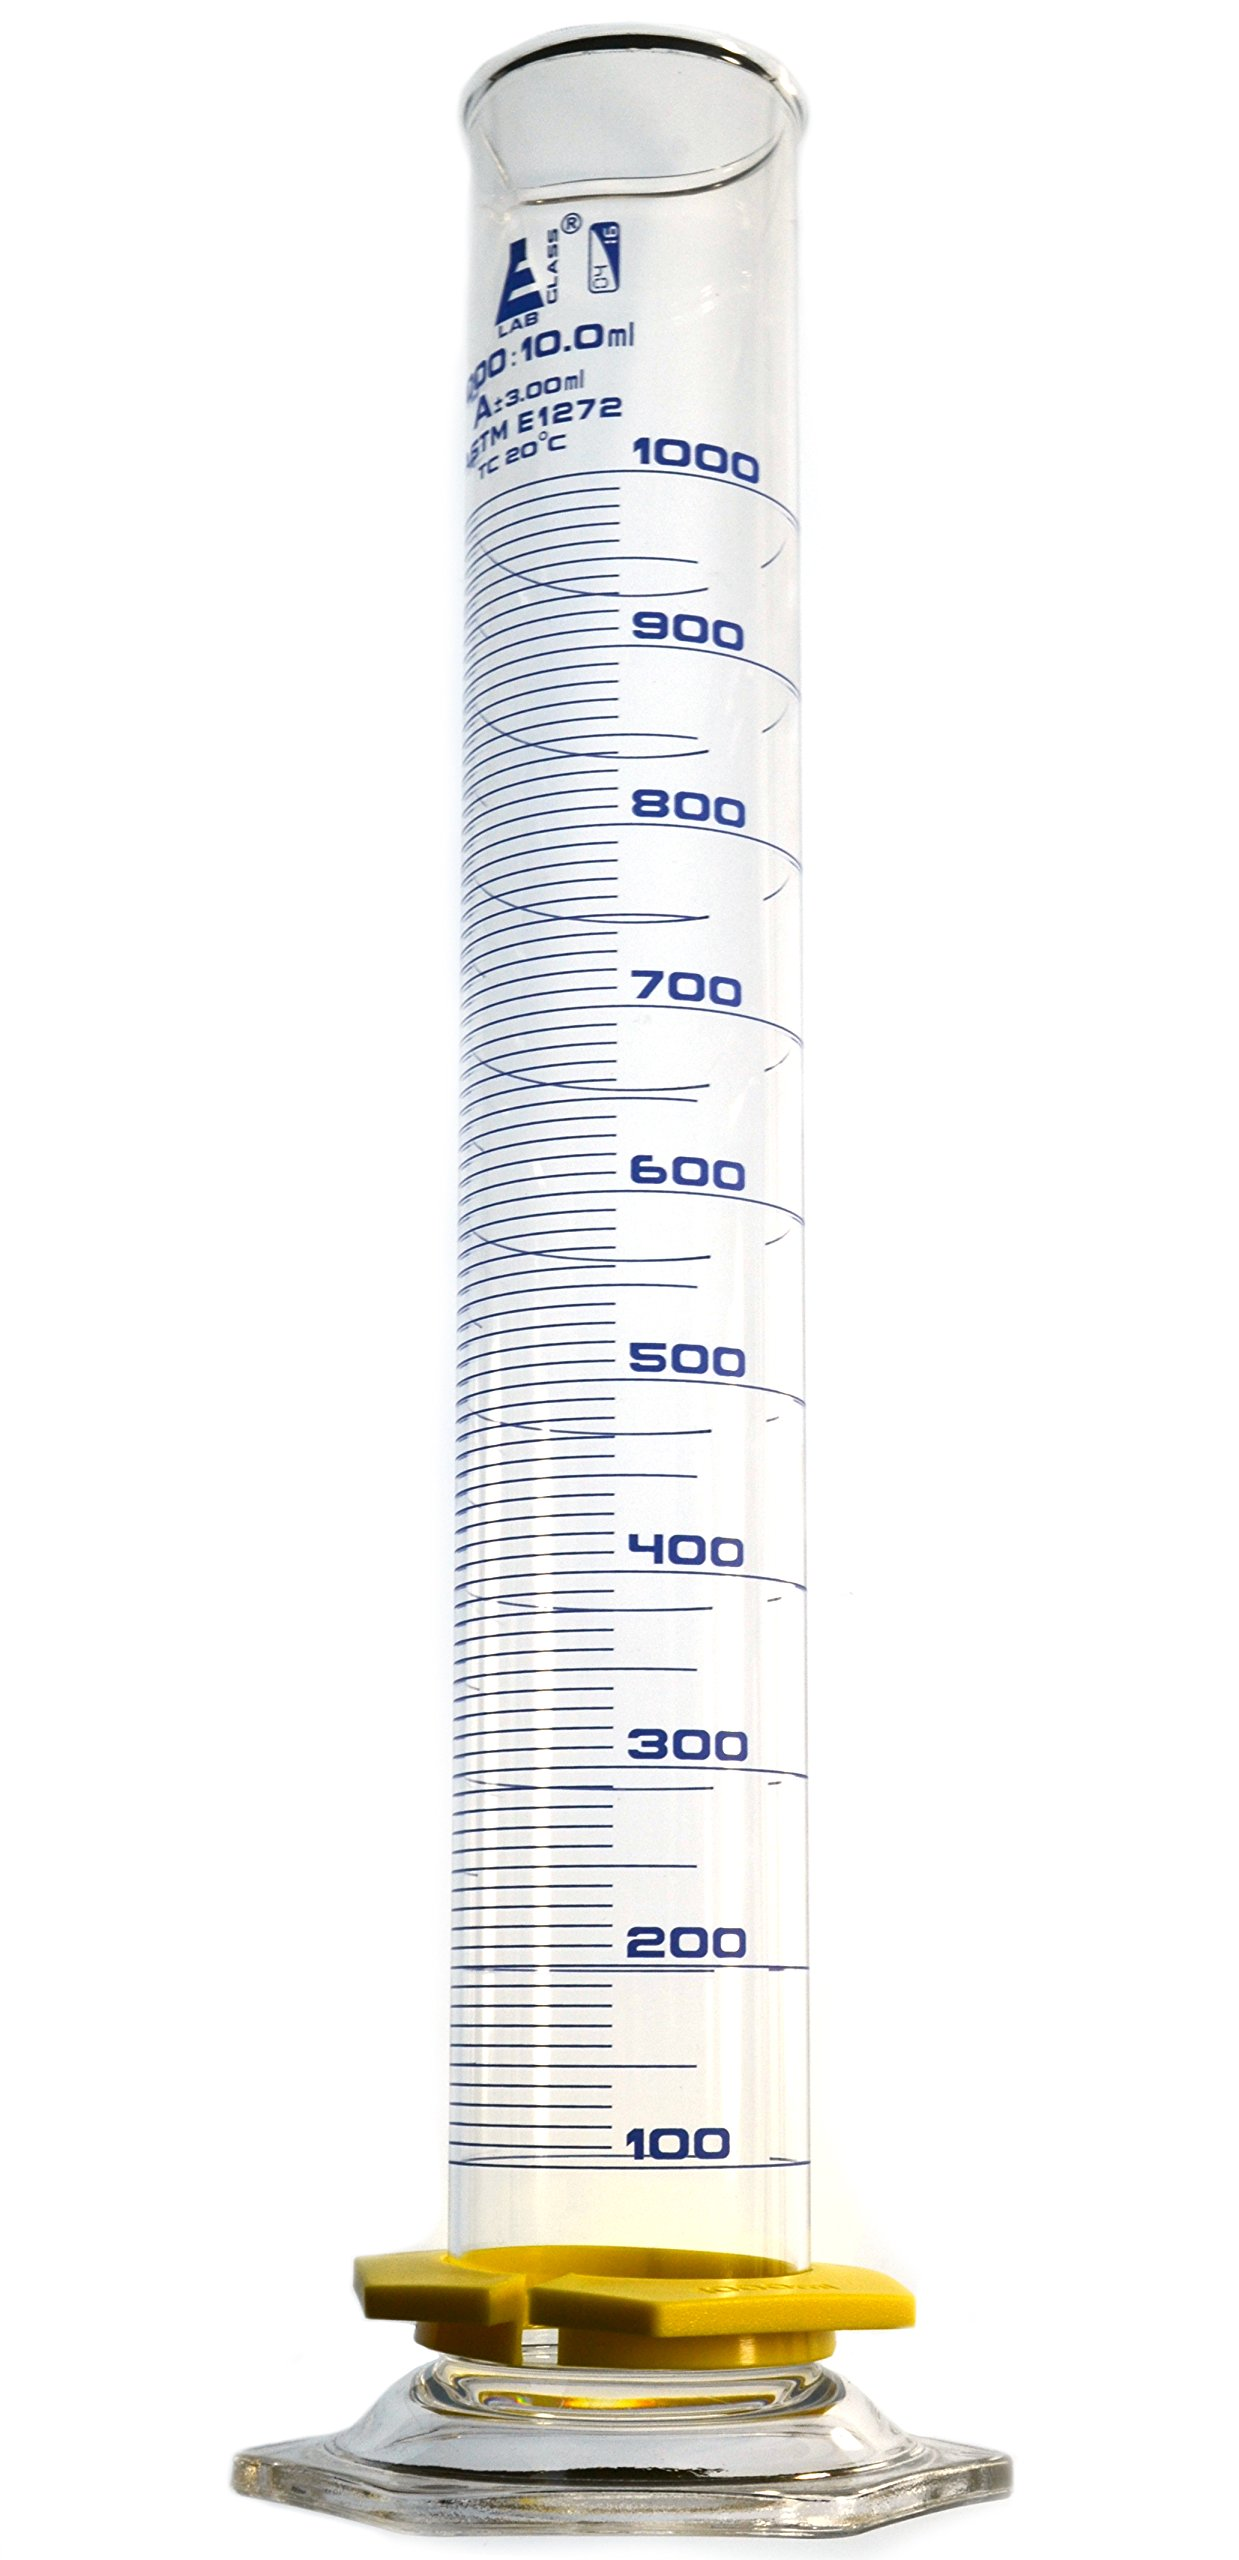 Measuring Cylinder, 1000ml - Class A, ASTM - Blue, 10ml Graduations - Borosilicate Glass - Eisco Labs